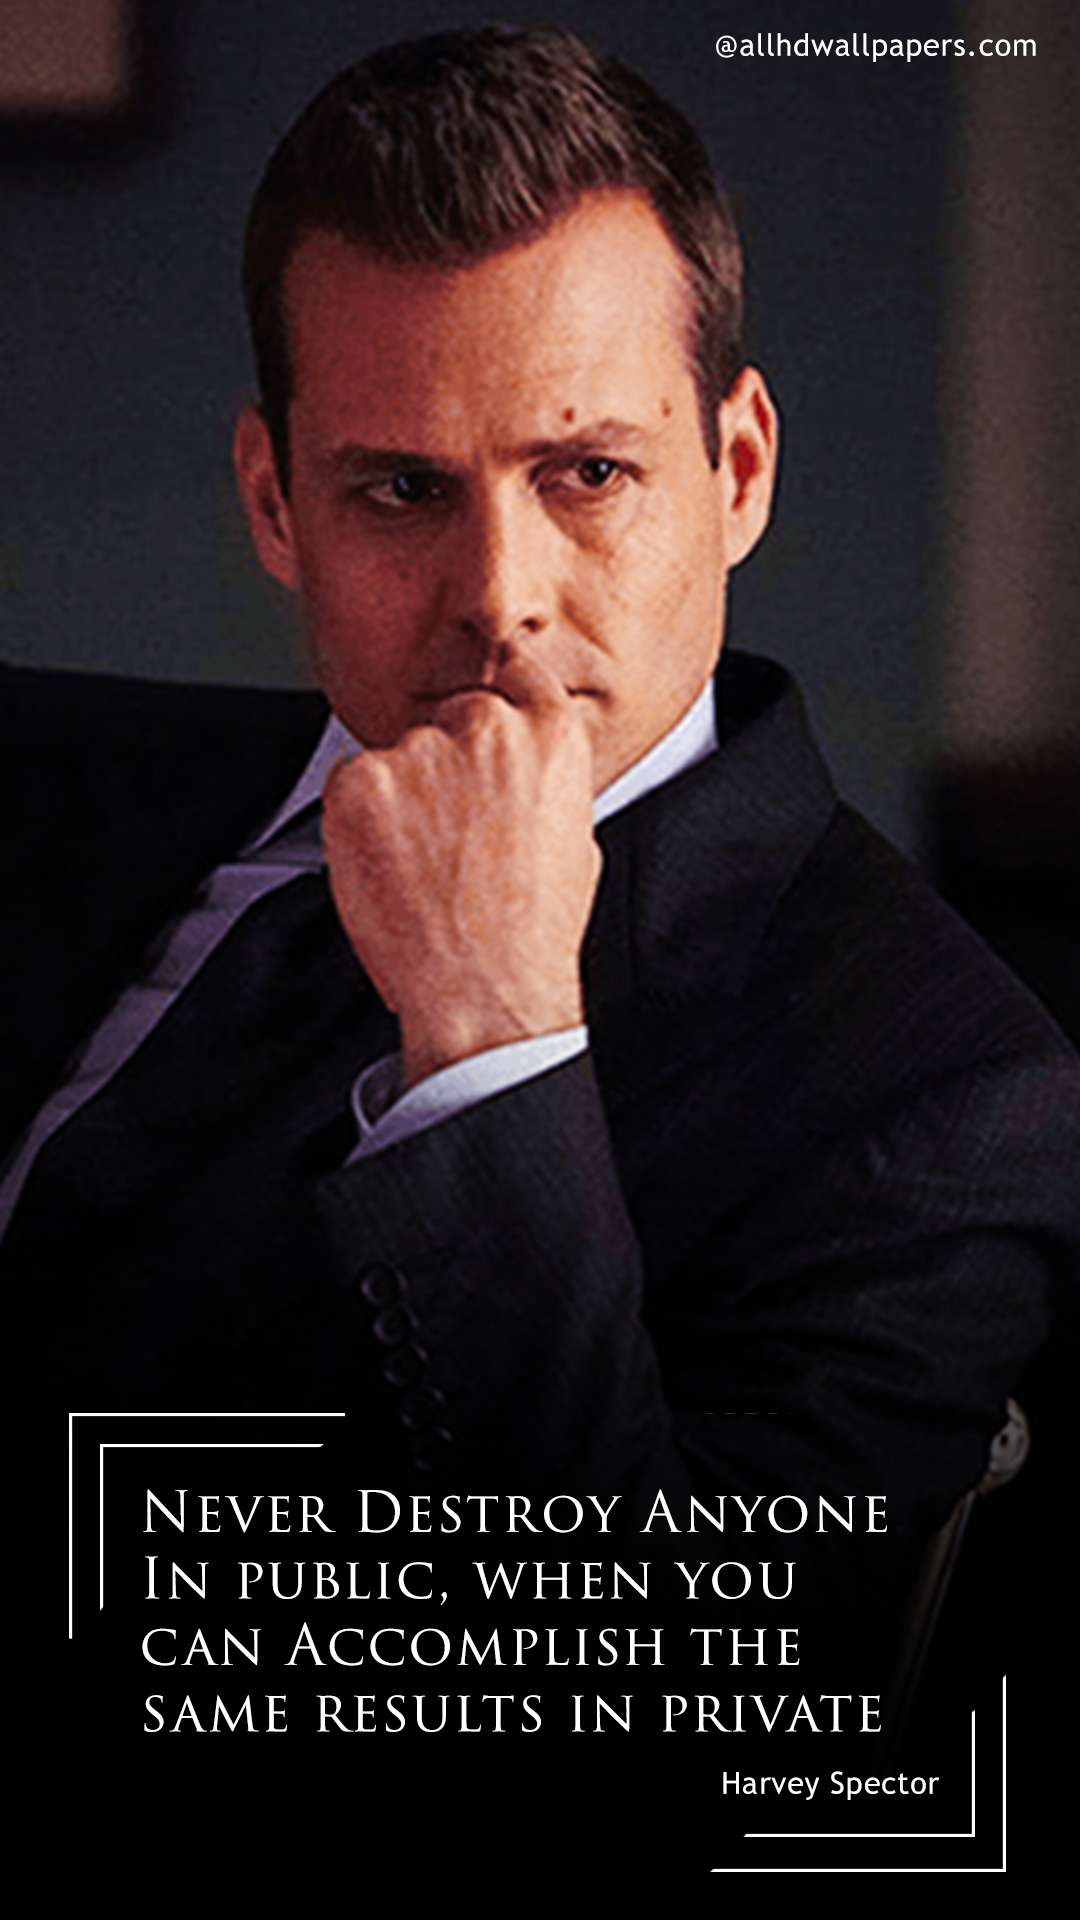 Harvey Specter Quotes Wallpaper Iphone 11 Harvey Specter Quotes Will Inspire You To Work Hard